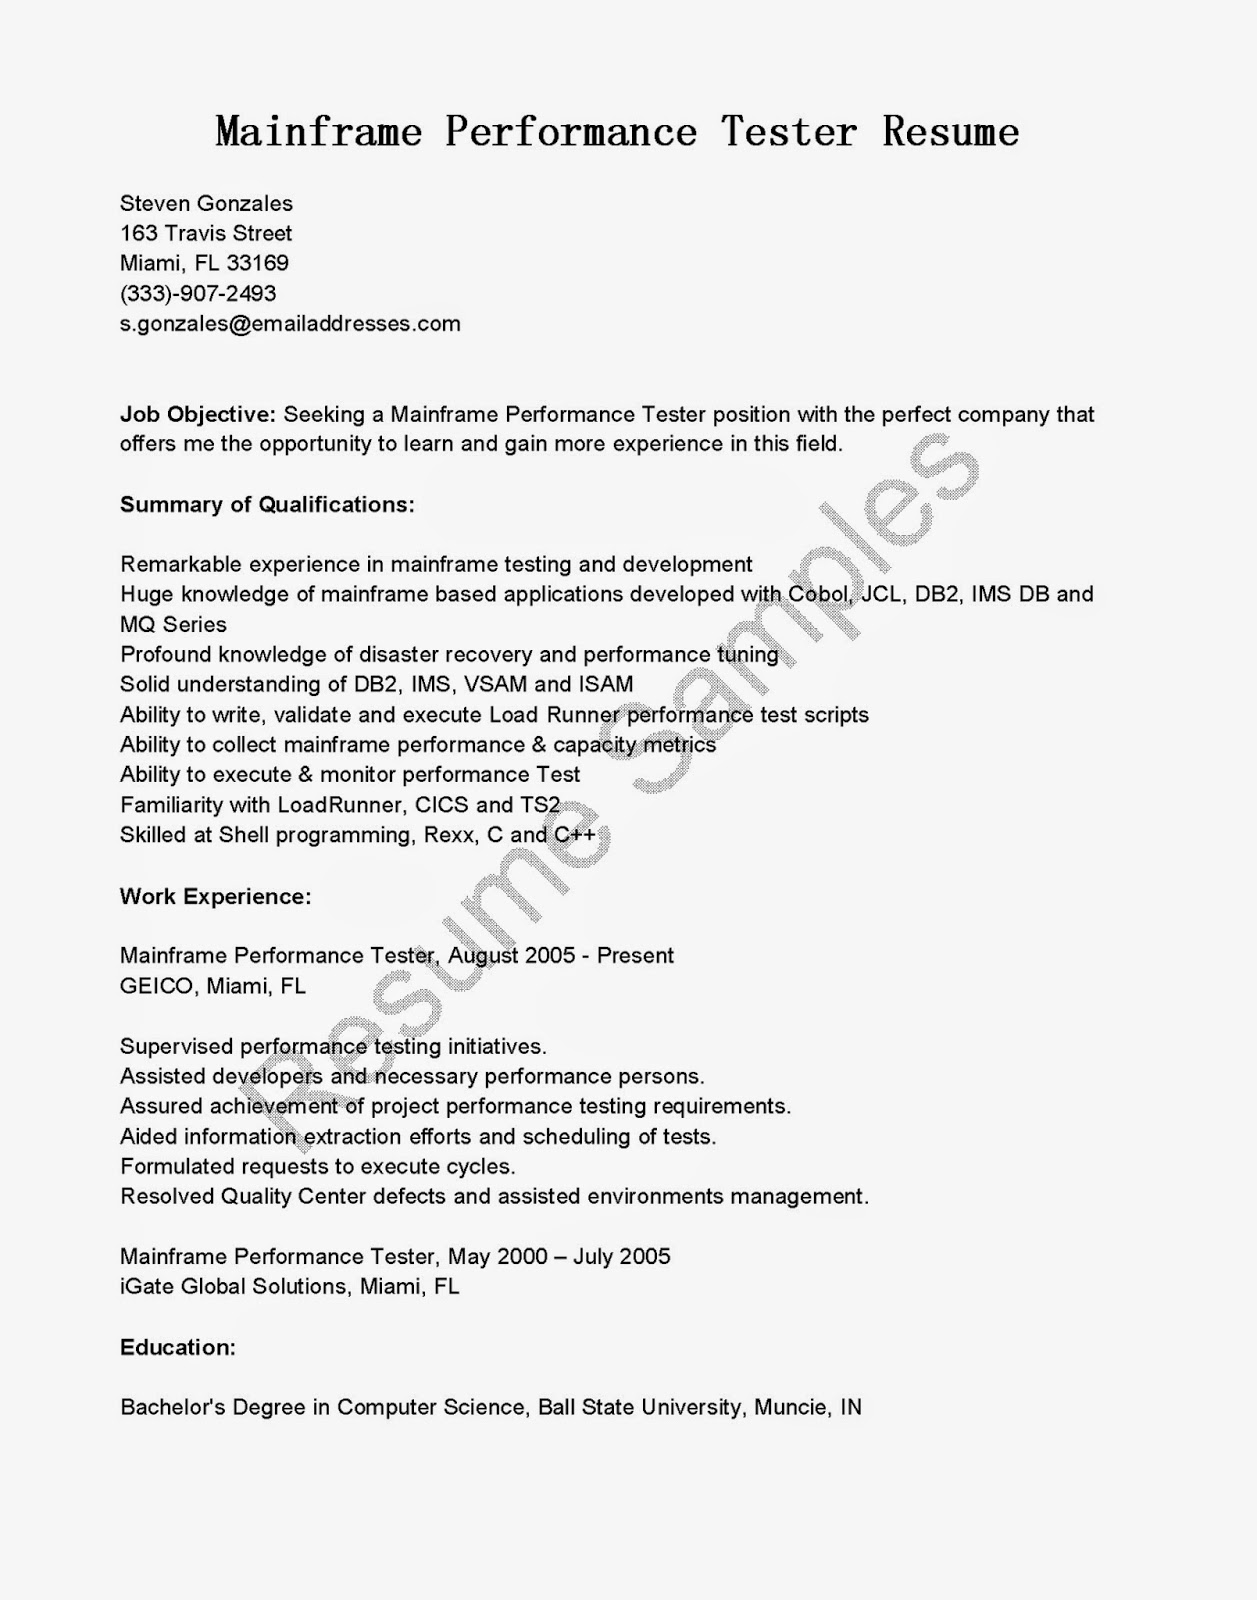 resume help cashier stern nyu application essays quotes of - Mainframe Resumes